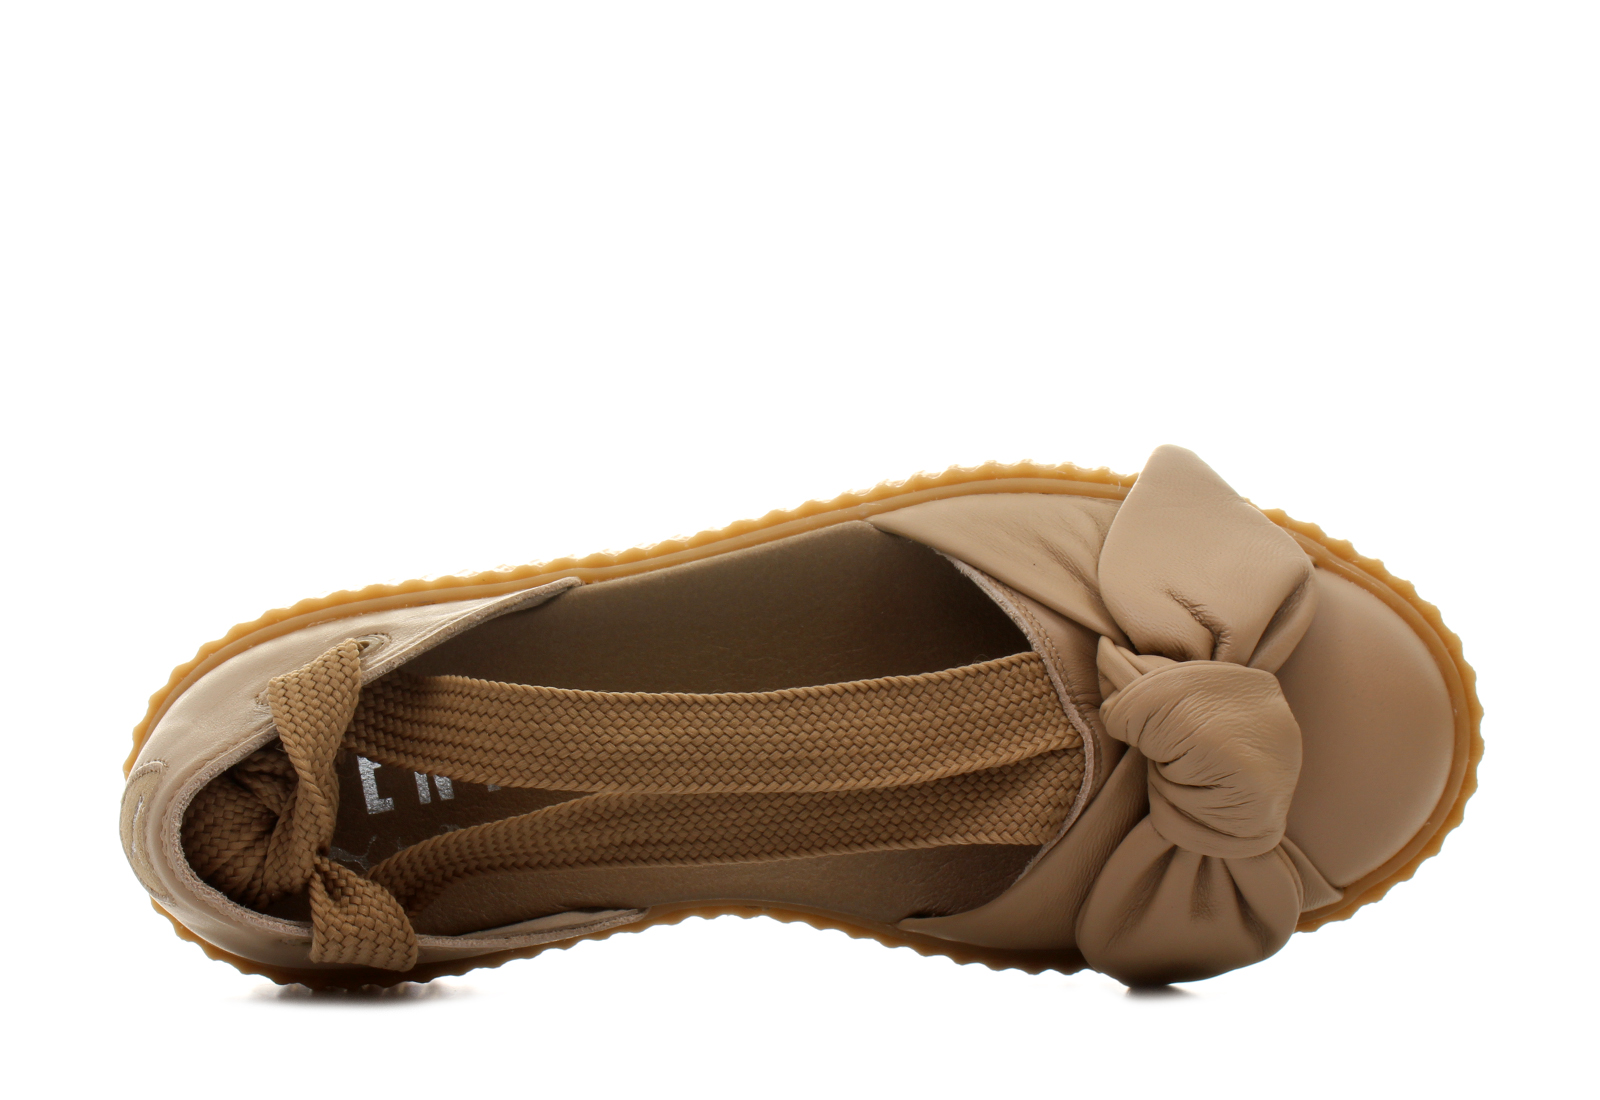 9e96b3653e6c Puma Szandál - Creeper Bandana Sandal - 36579403-nat - Office Shoes ...